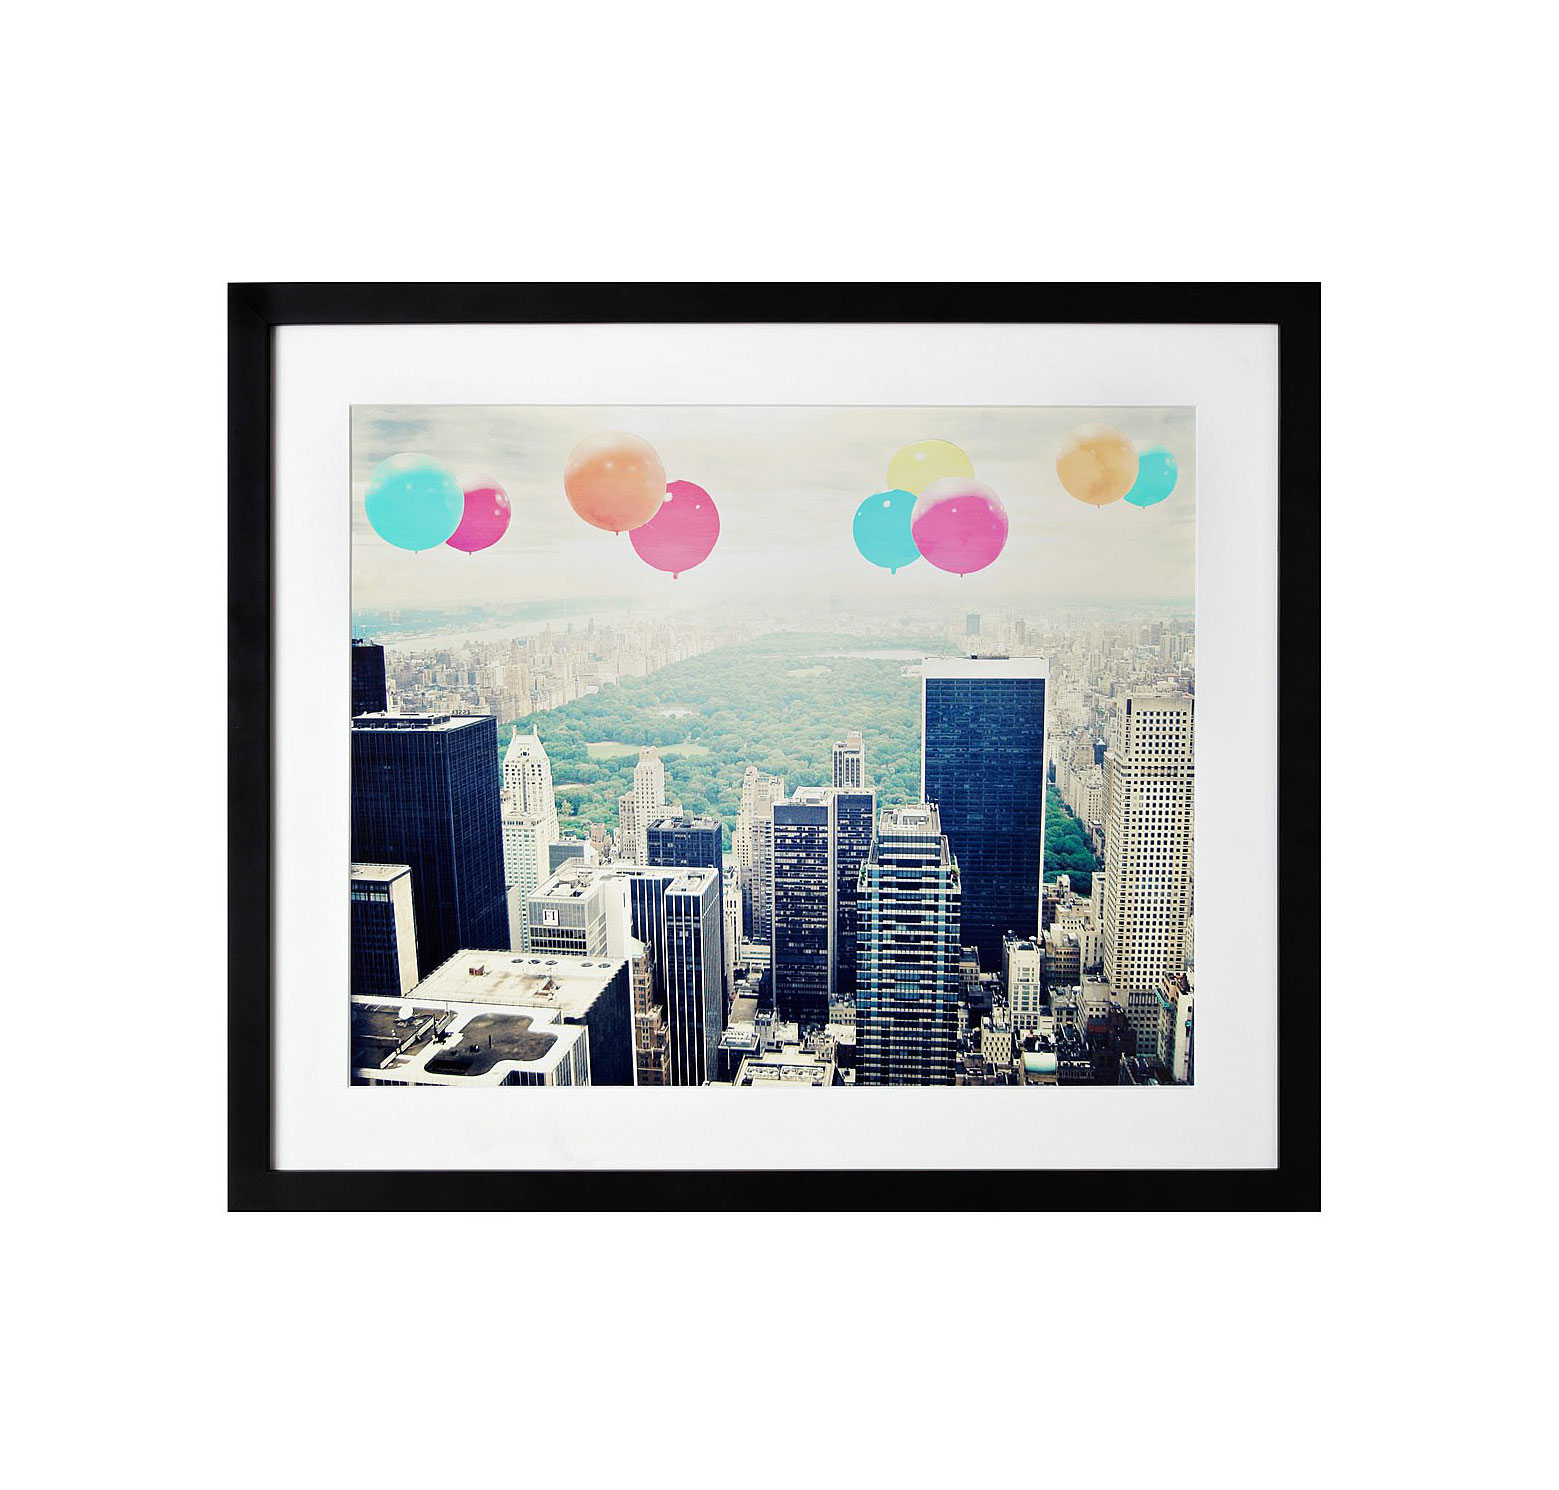 Balloons over central park in black frame